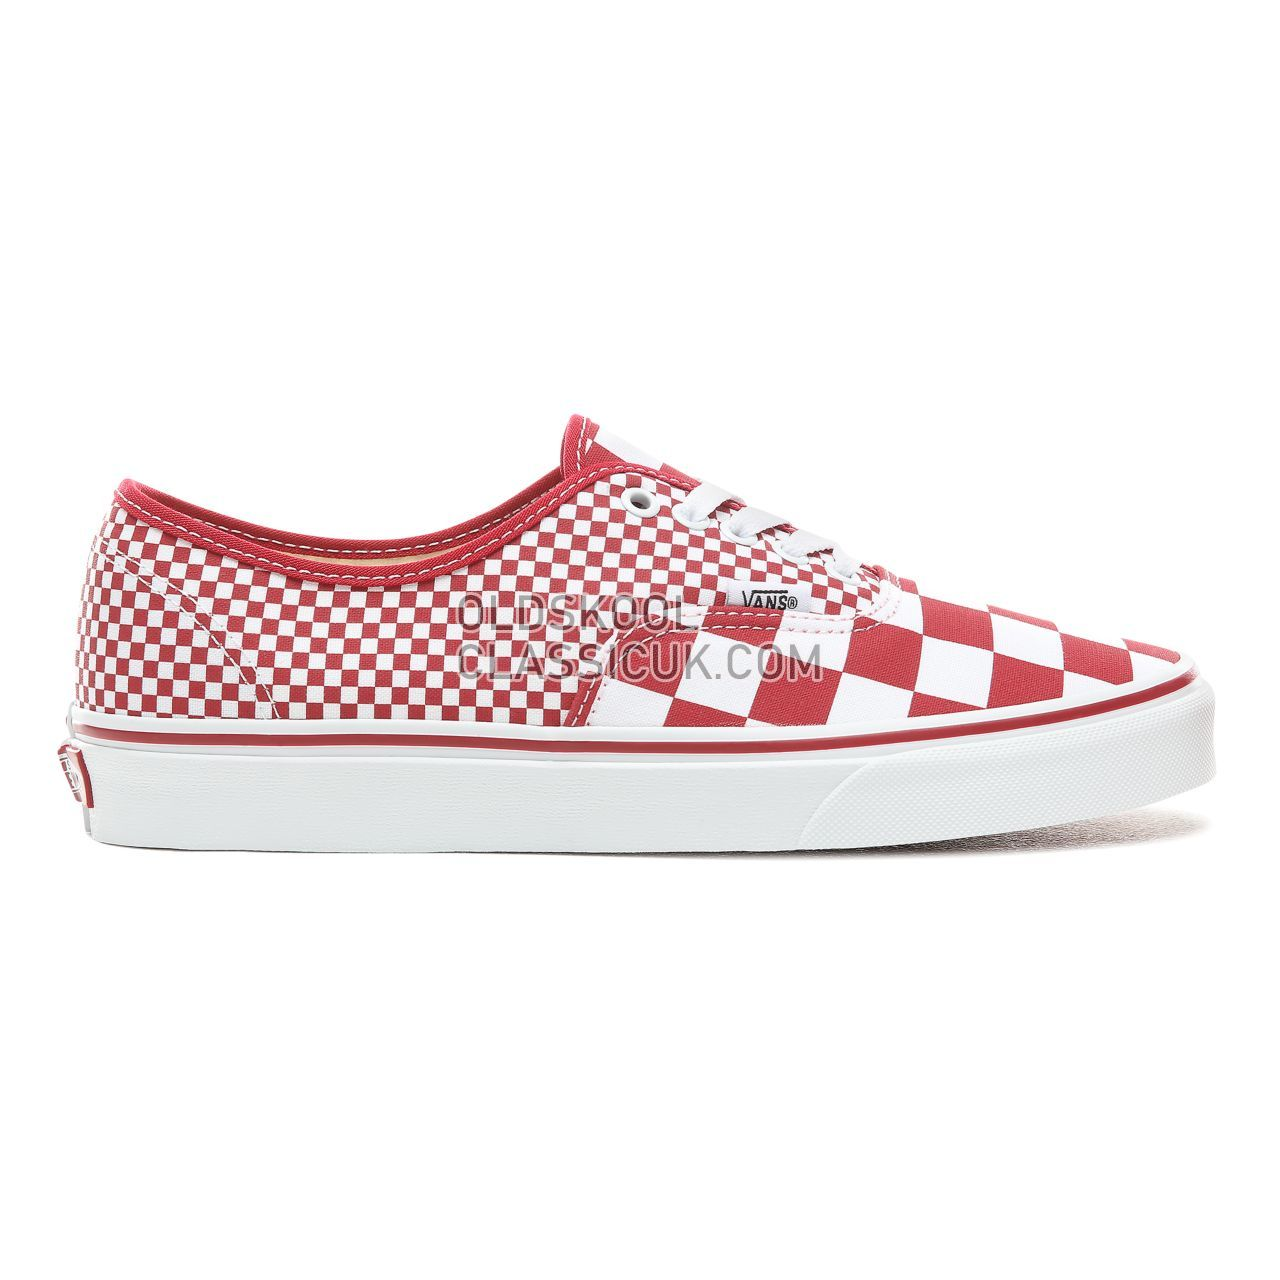 59f9b26653e Vans Mix Checker Authentic Sneakers Mens (Mix Checker) Chili Pepper True  White VN0A38EMVK5 ...